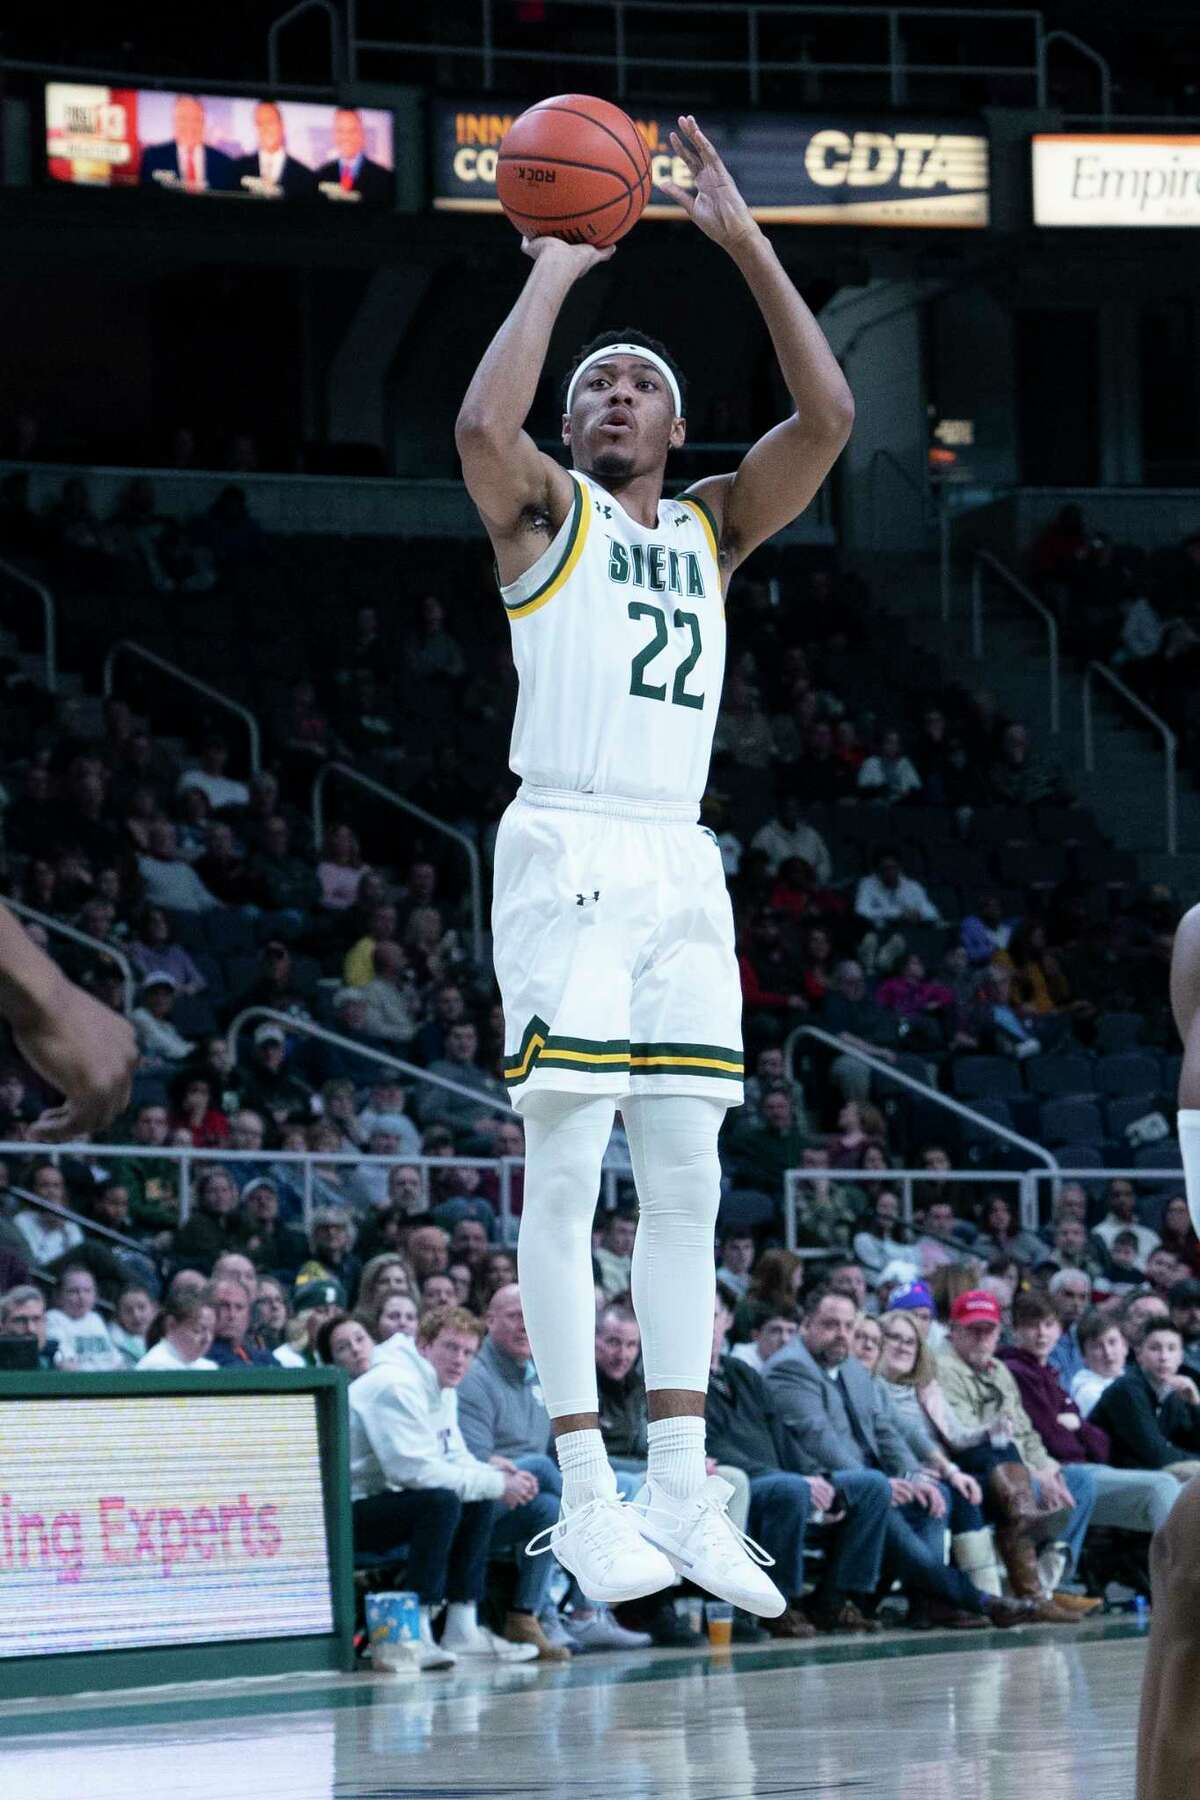 Siena guard Jalen Pickett may not be back for games against Rider on Friday and Saturday. He will rest his injured hamstring on Friday to see if he can play, Siena coach Carmen Maciariello said.